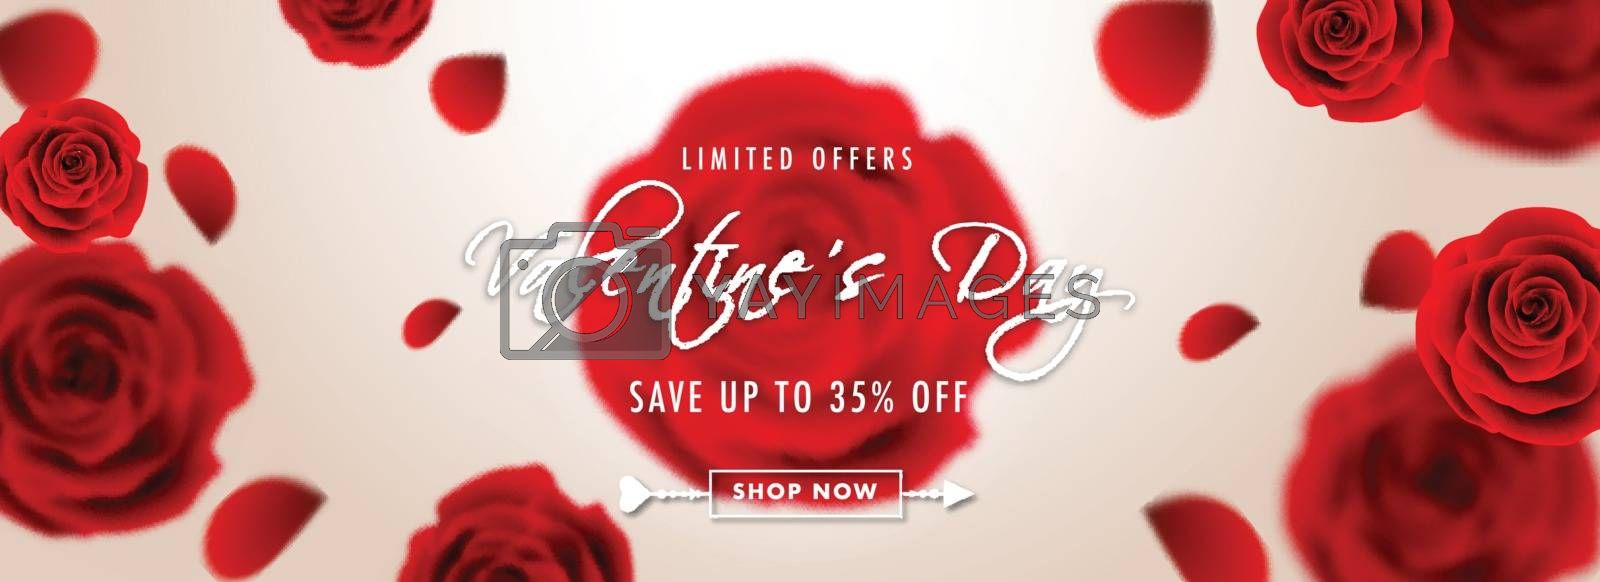 Royalty free image of Realistic rose flowers on glossy background for Valentine Day sa by aispl